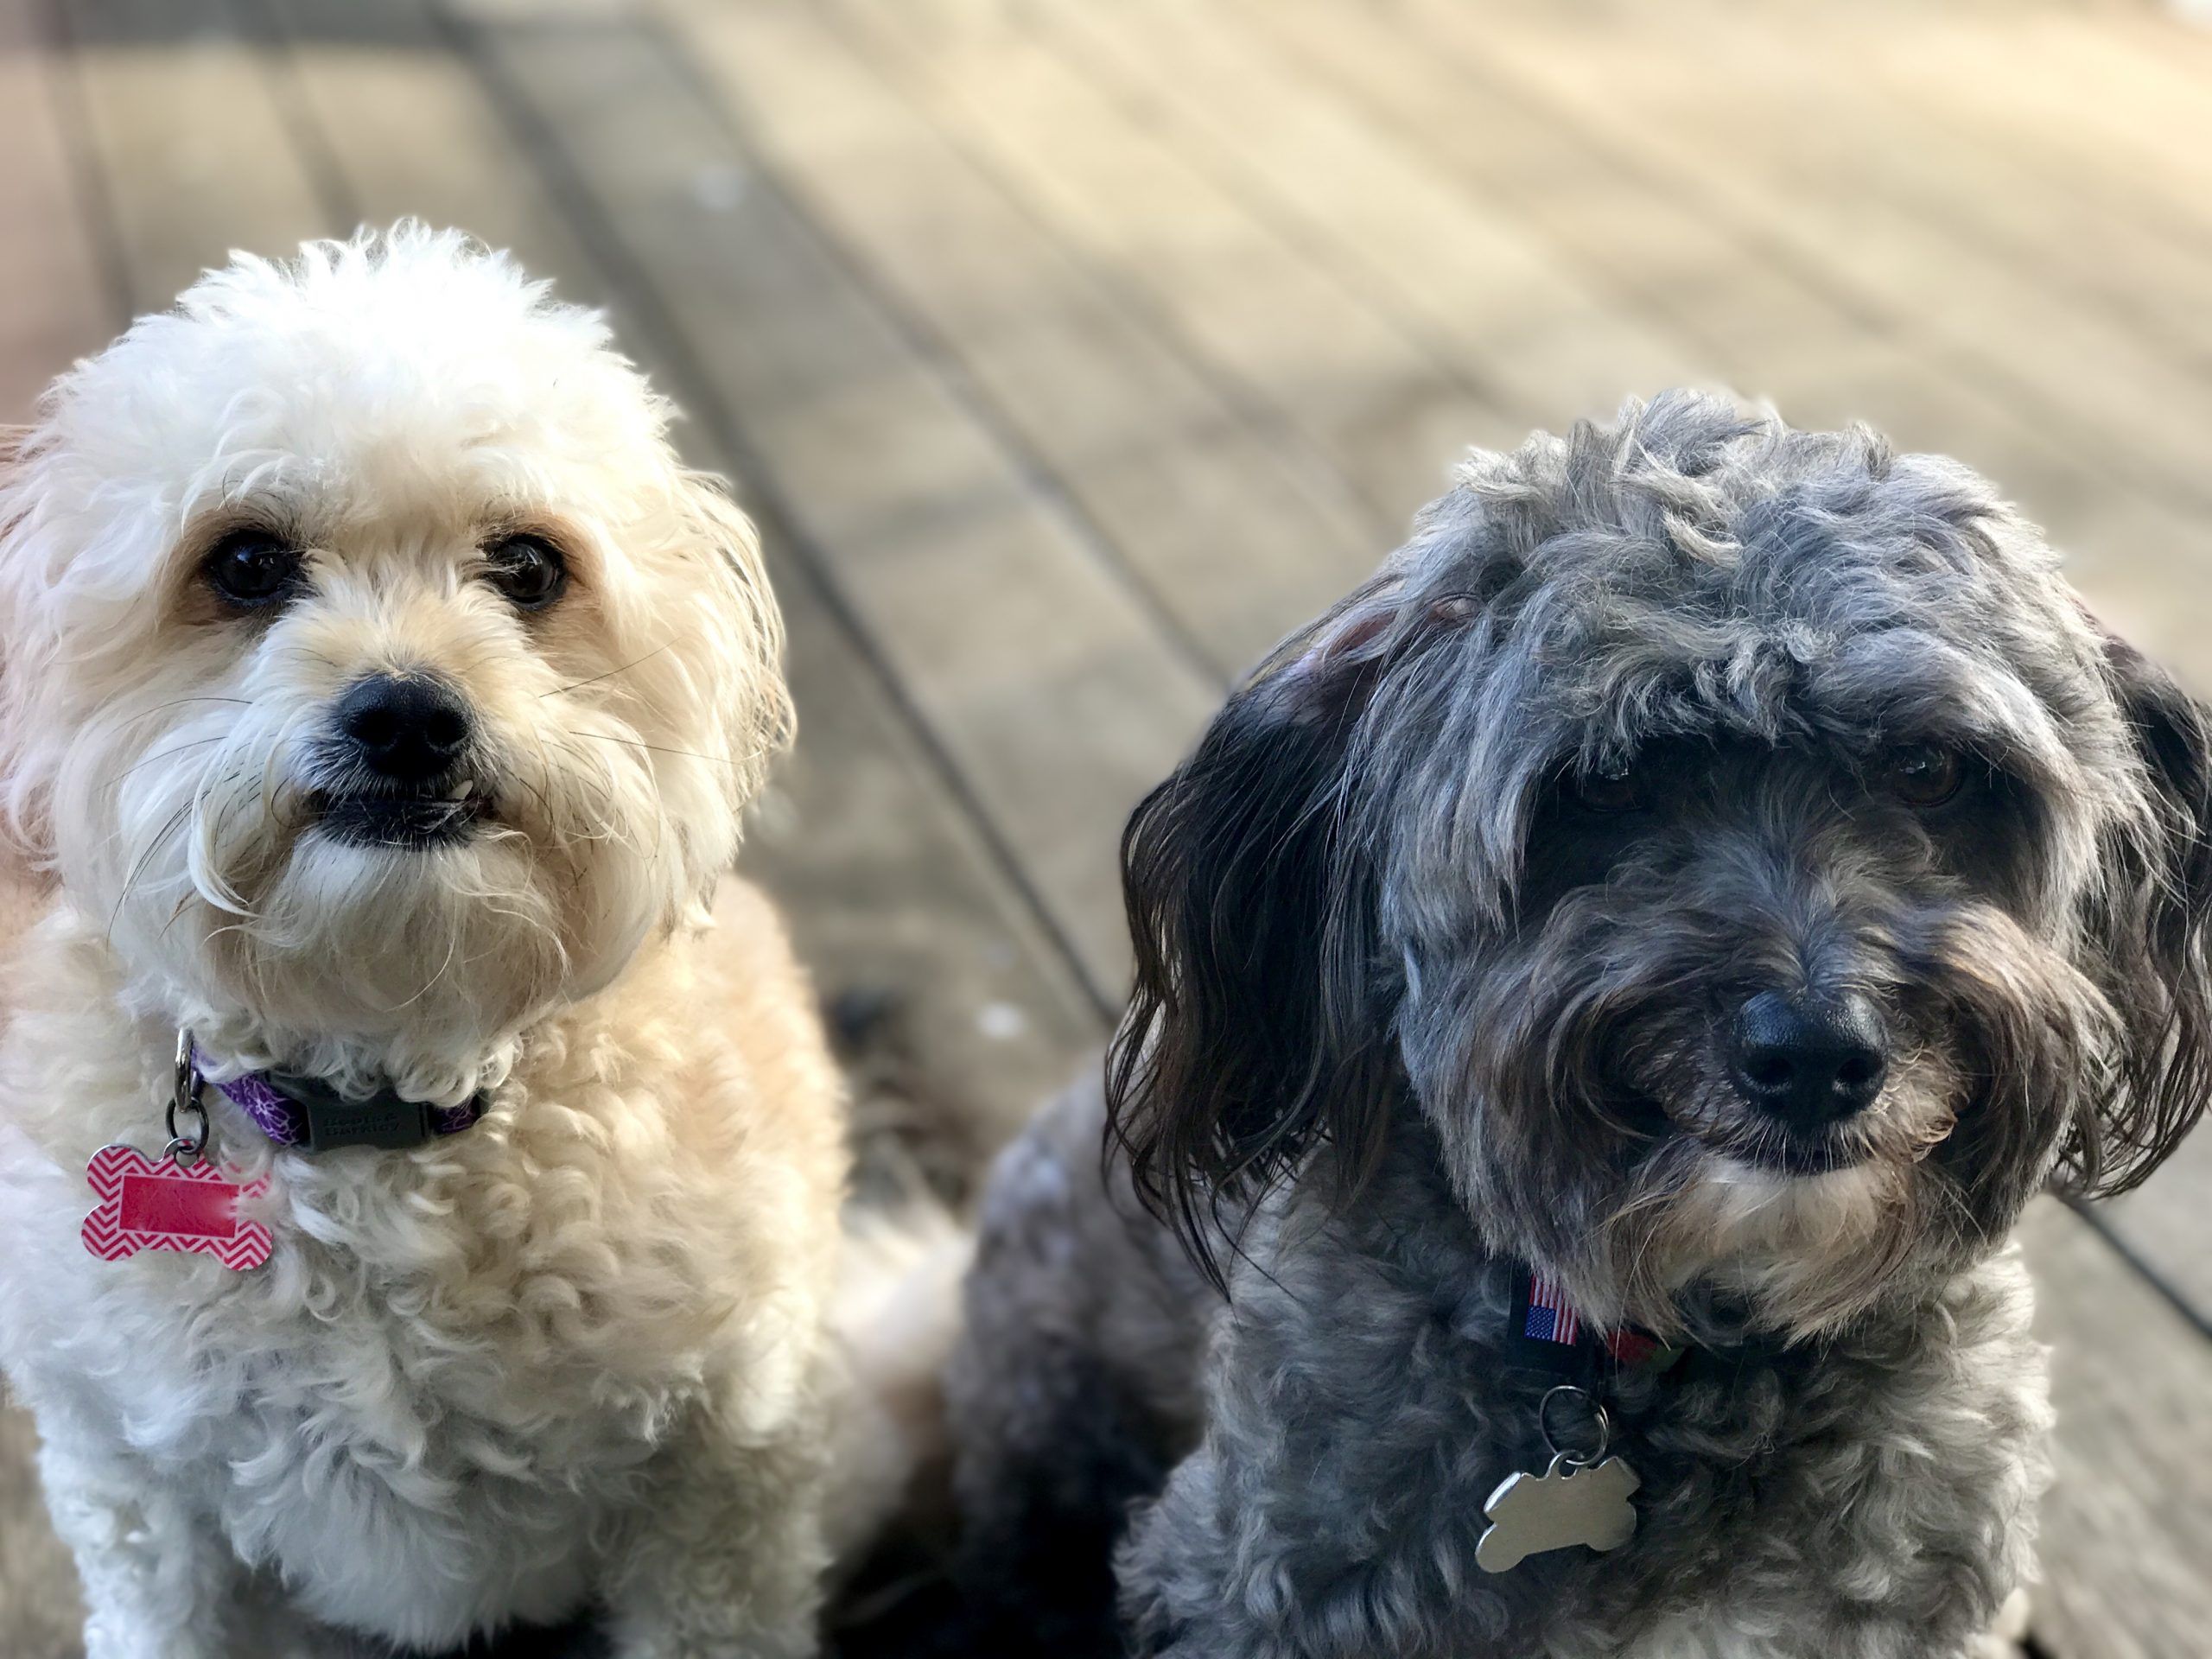 two small fluffy dogs sit and look at camera